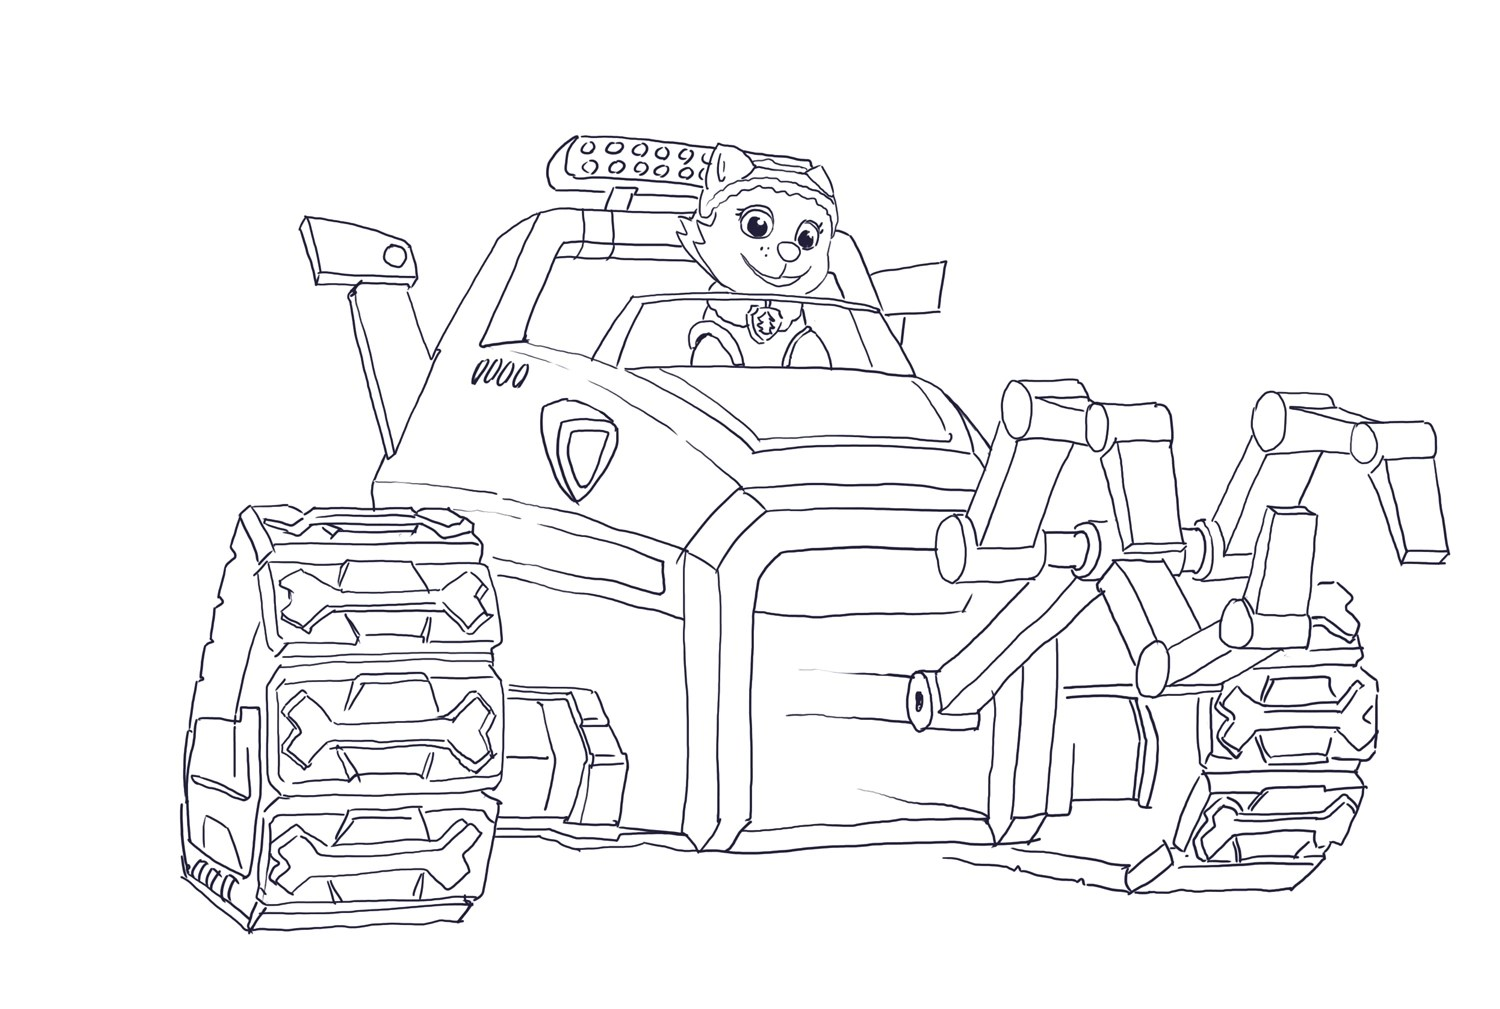 Hd Wallpapers Paw Patrol Lookout Coloring Pages Hdigdg